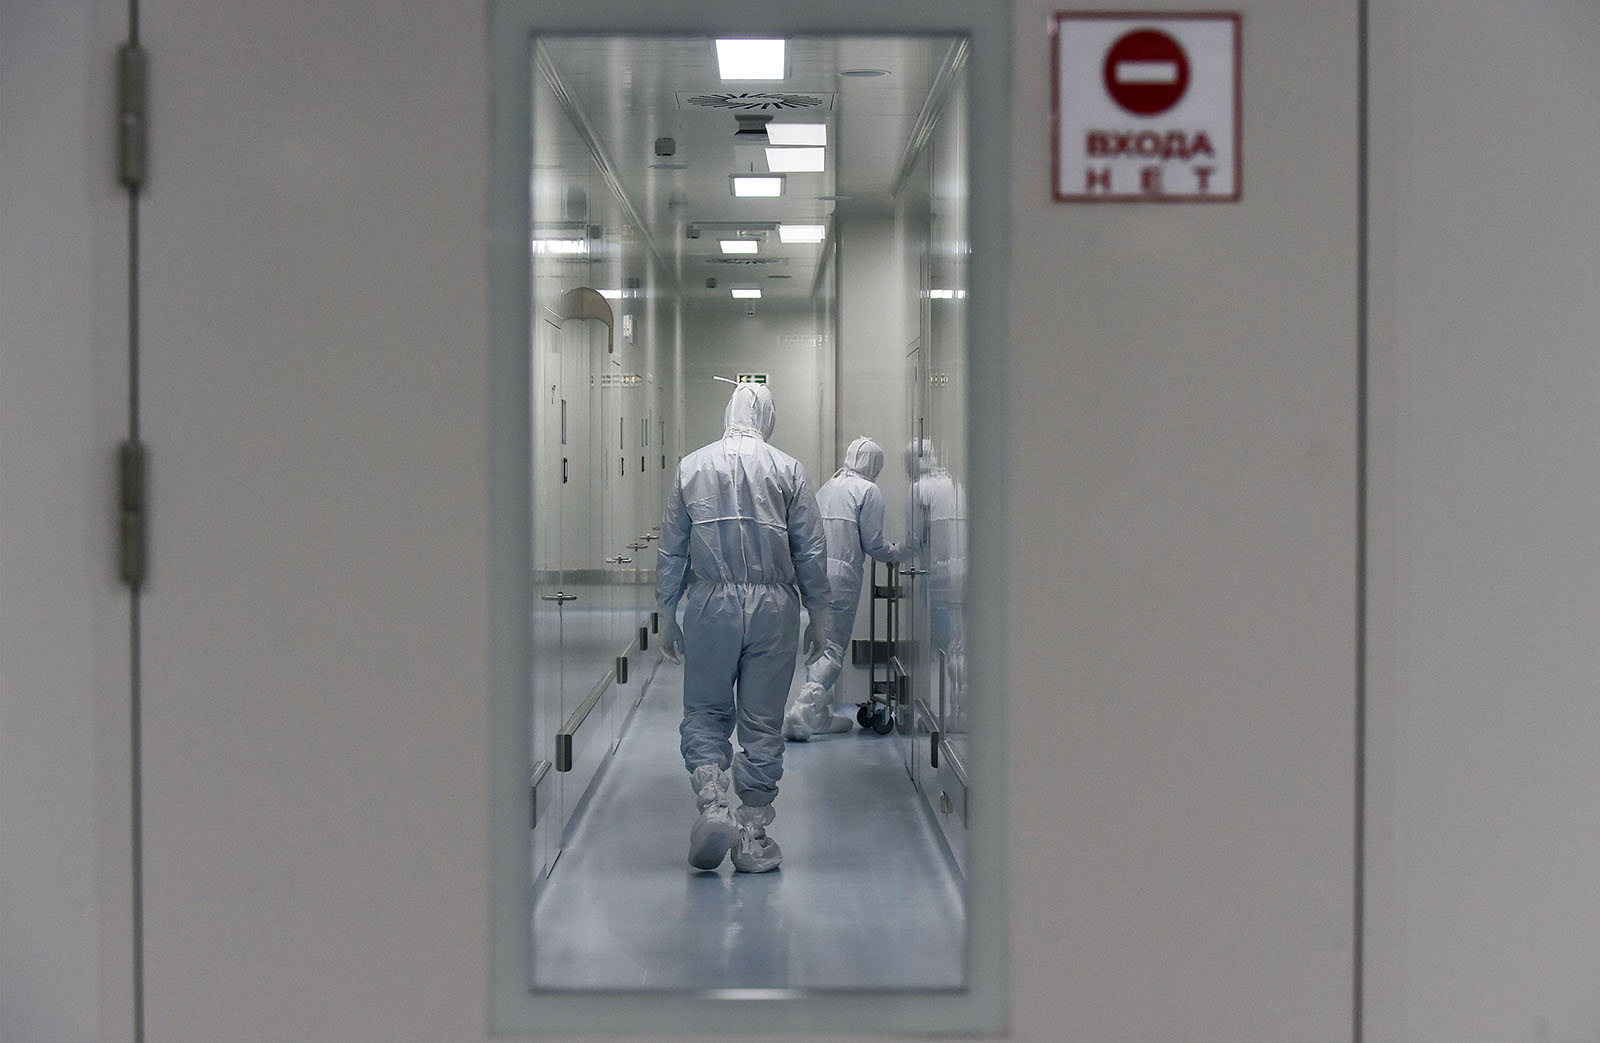 Employees are seen at Russia's biotech company BIOCAD, which is working on a coronavirus vaccine.